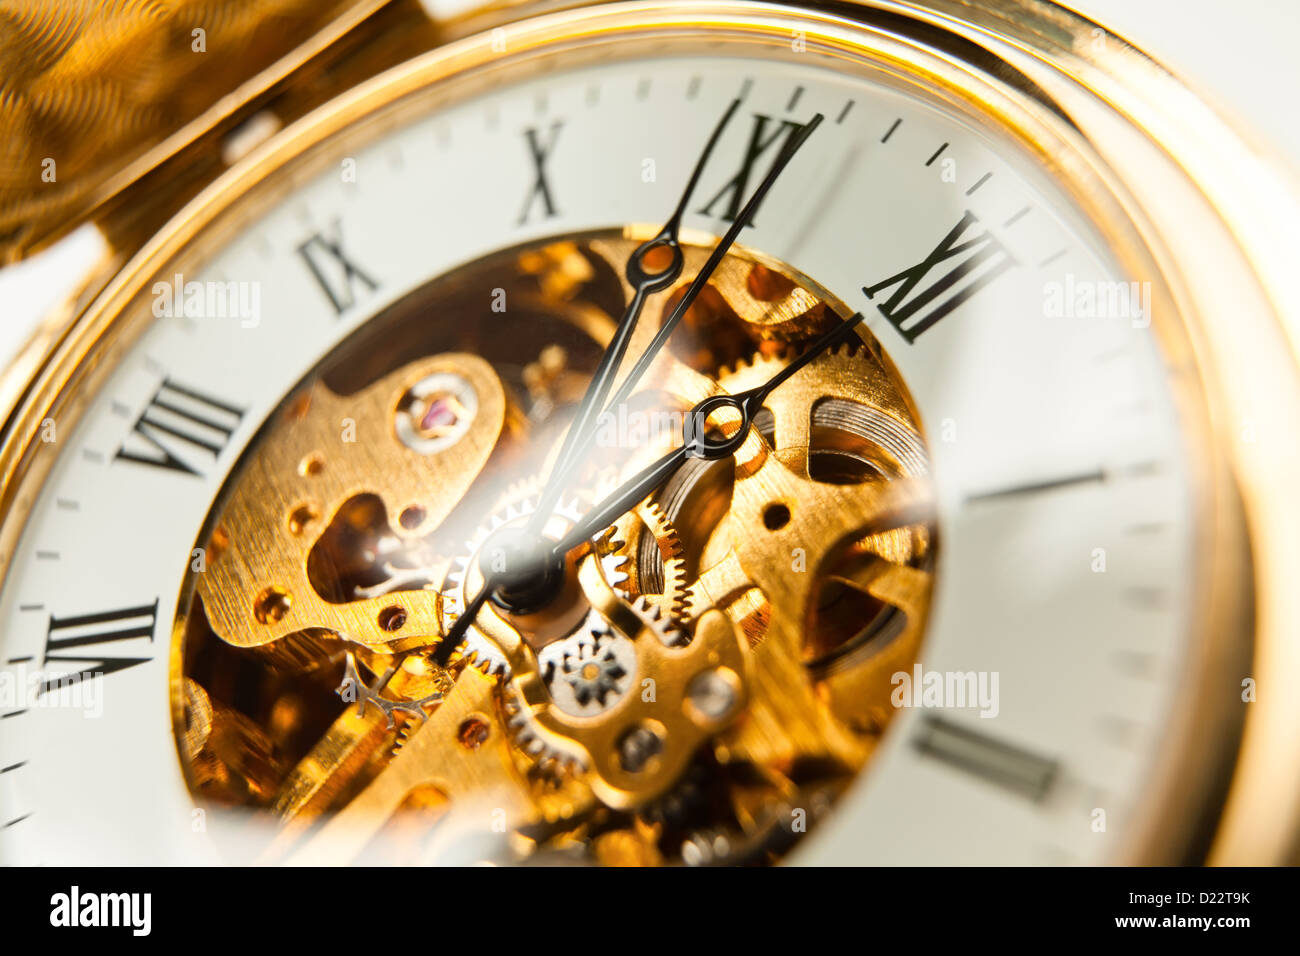 watch pocket full frame closeup - Stock Image